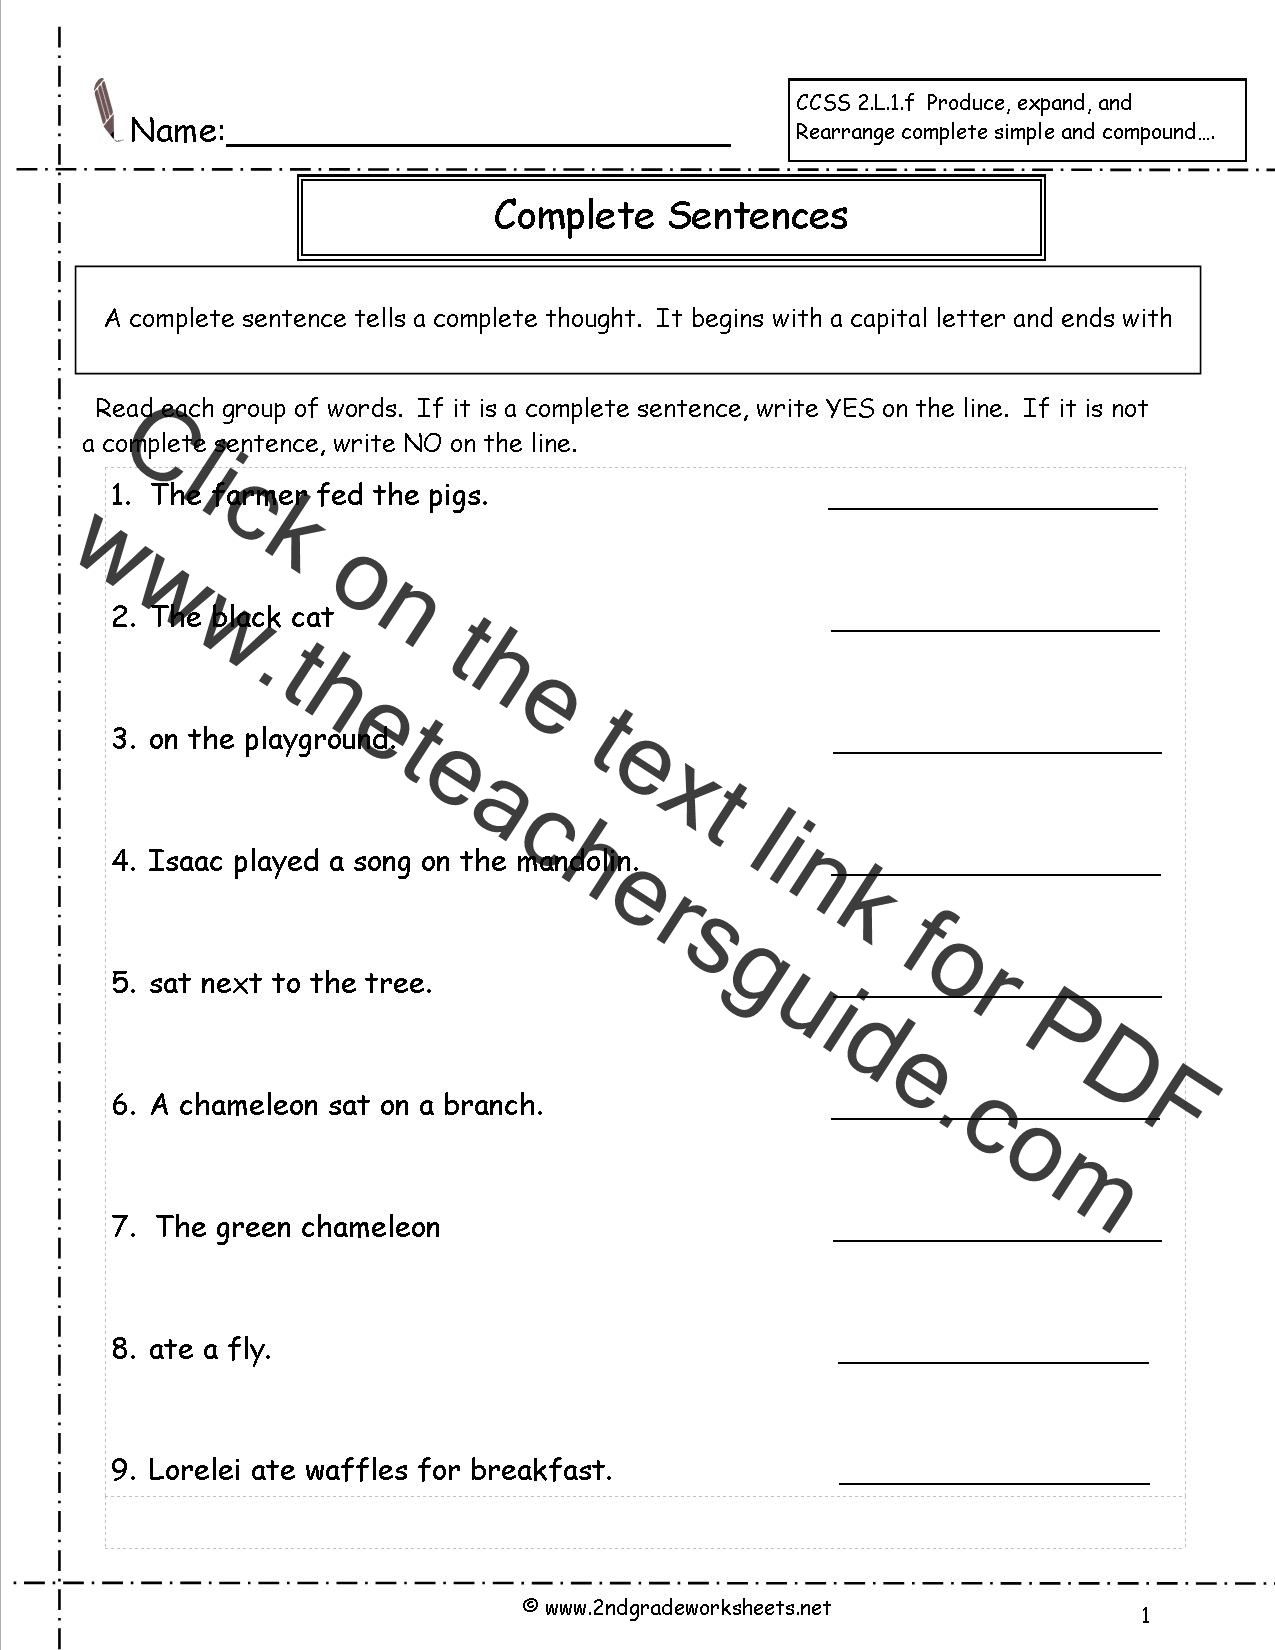 Compound Sentences Worksheet with Answers Second Grade Sentences Worksheets Ccss 2 L 1 F Worksheets